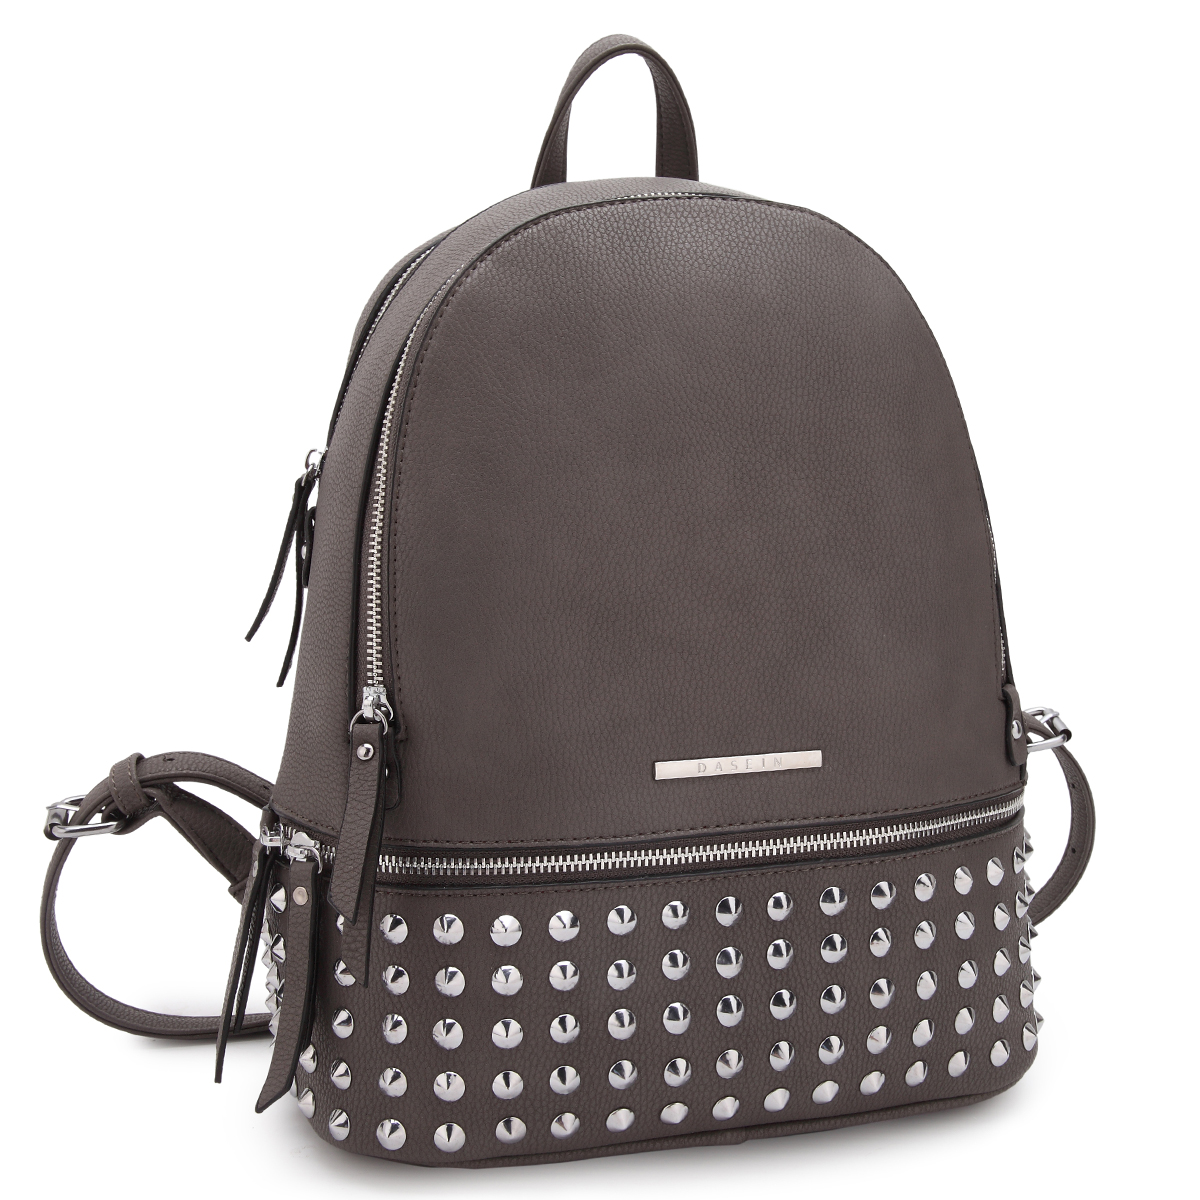 Dasein Medium Faux Leather Spiked Studded Backpack